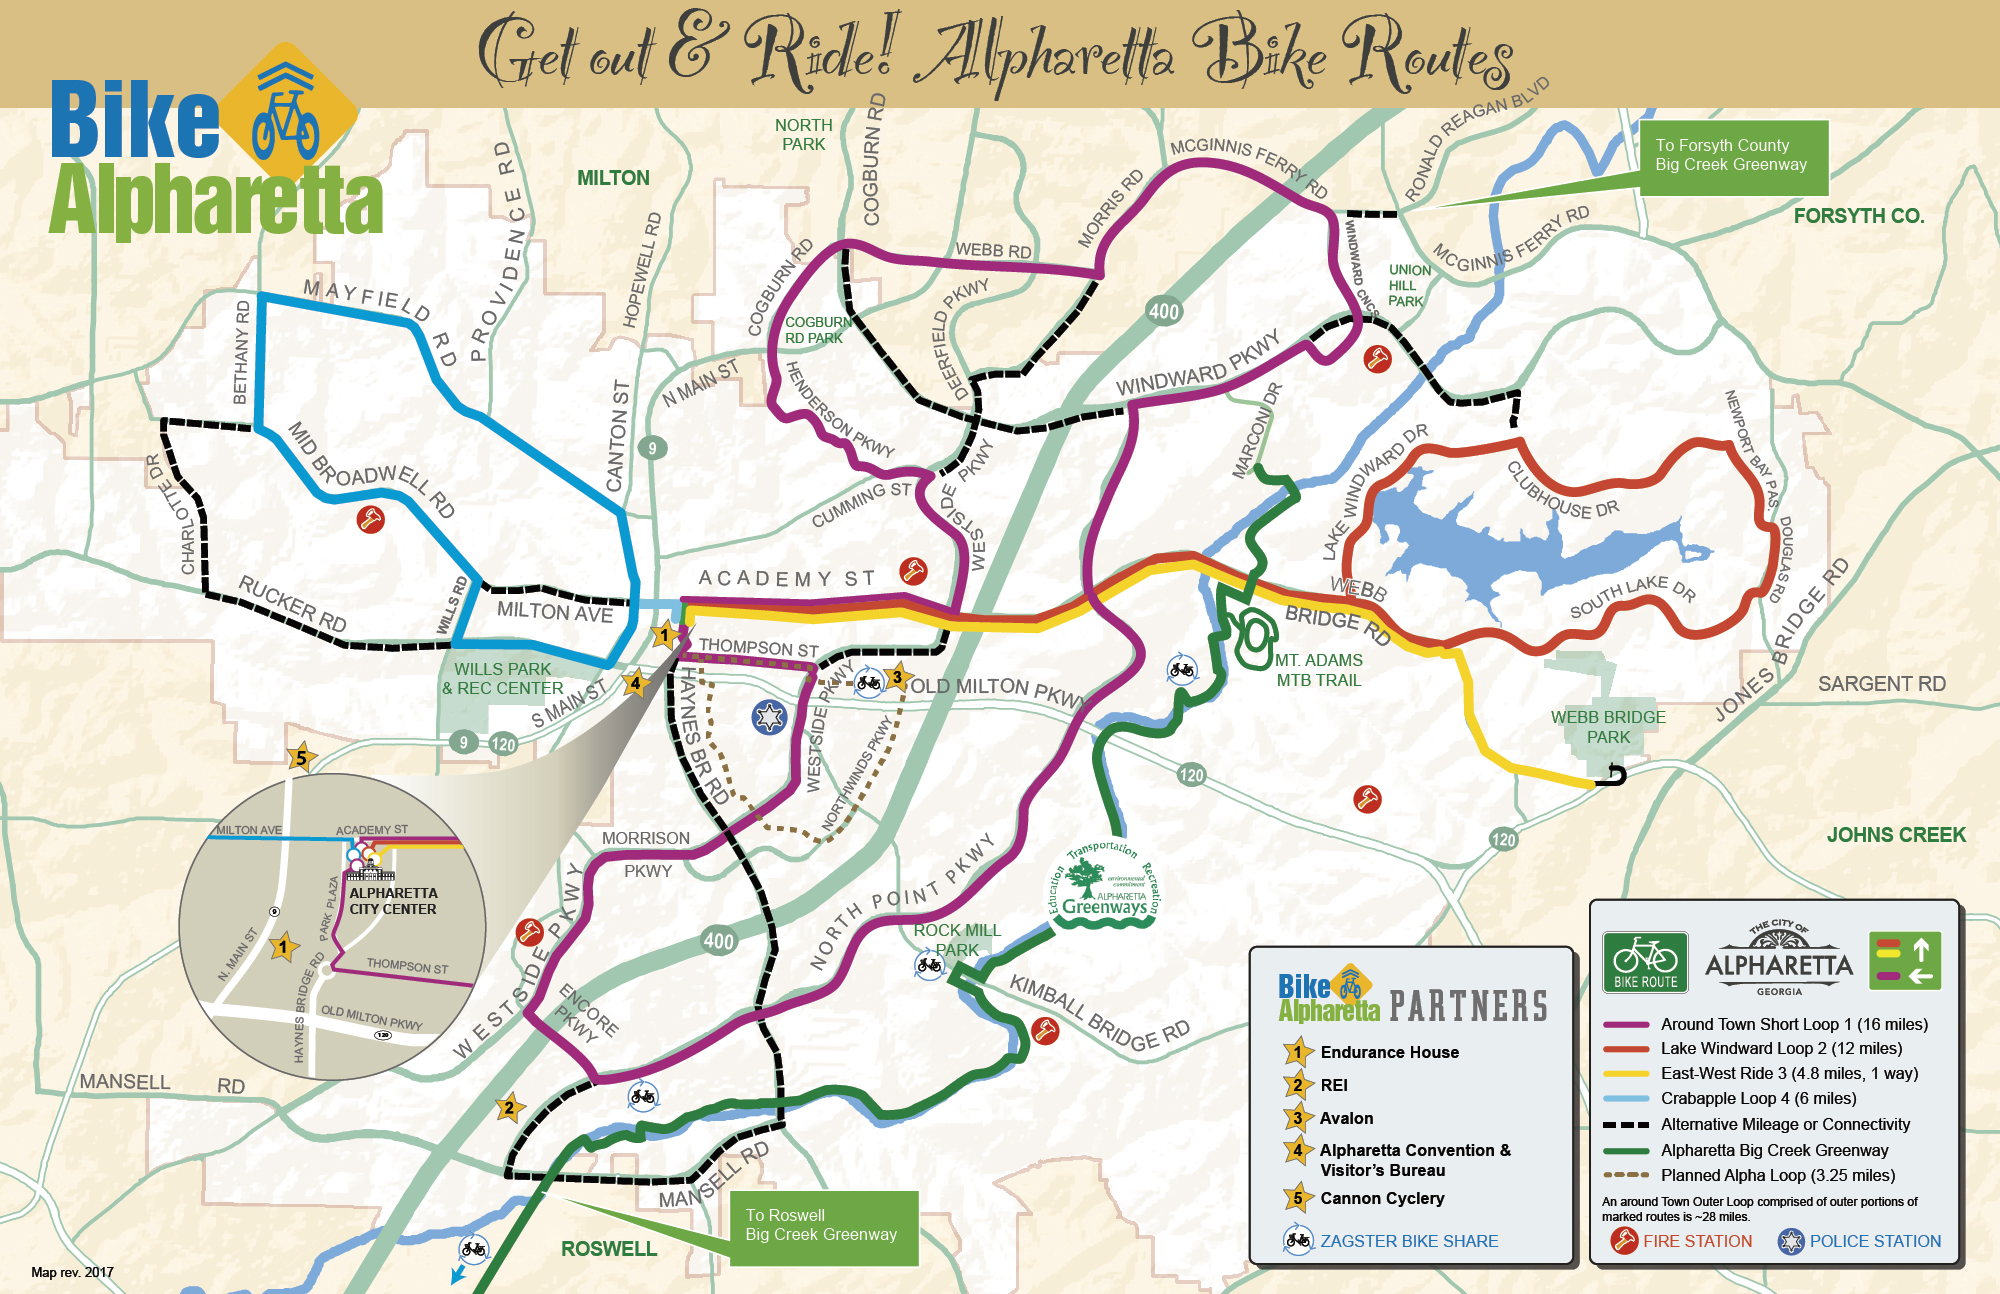 Out About Bike Alpharetta - Map my bike